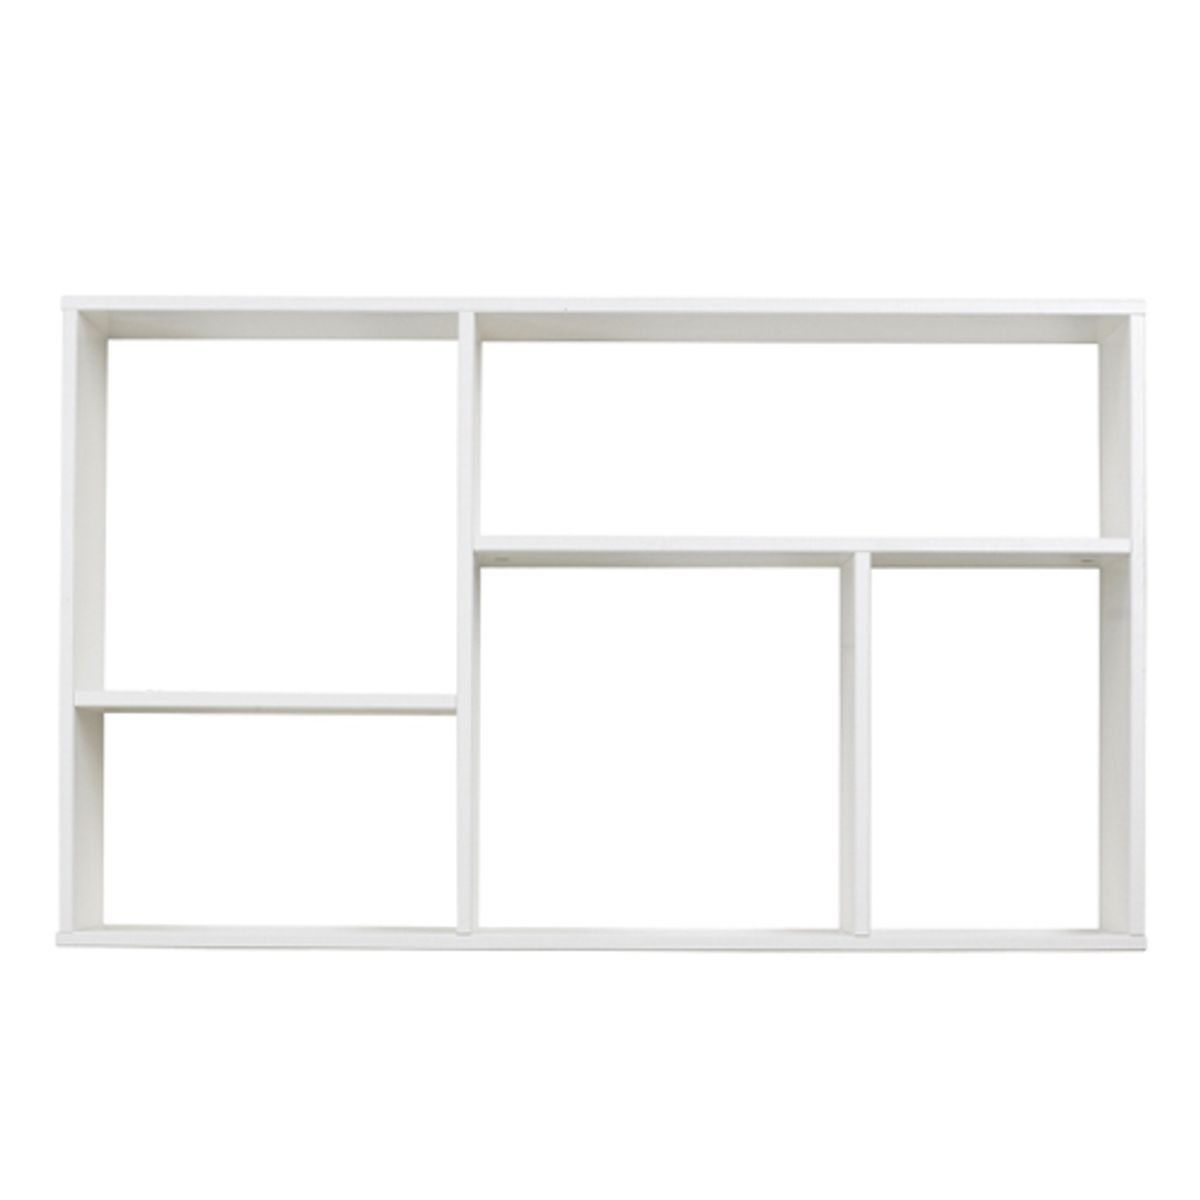 etag re murale en pin blanc 5 niches dennis fabrication. Black Bedroom Furniture Sets. Home Design Ideas